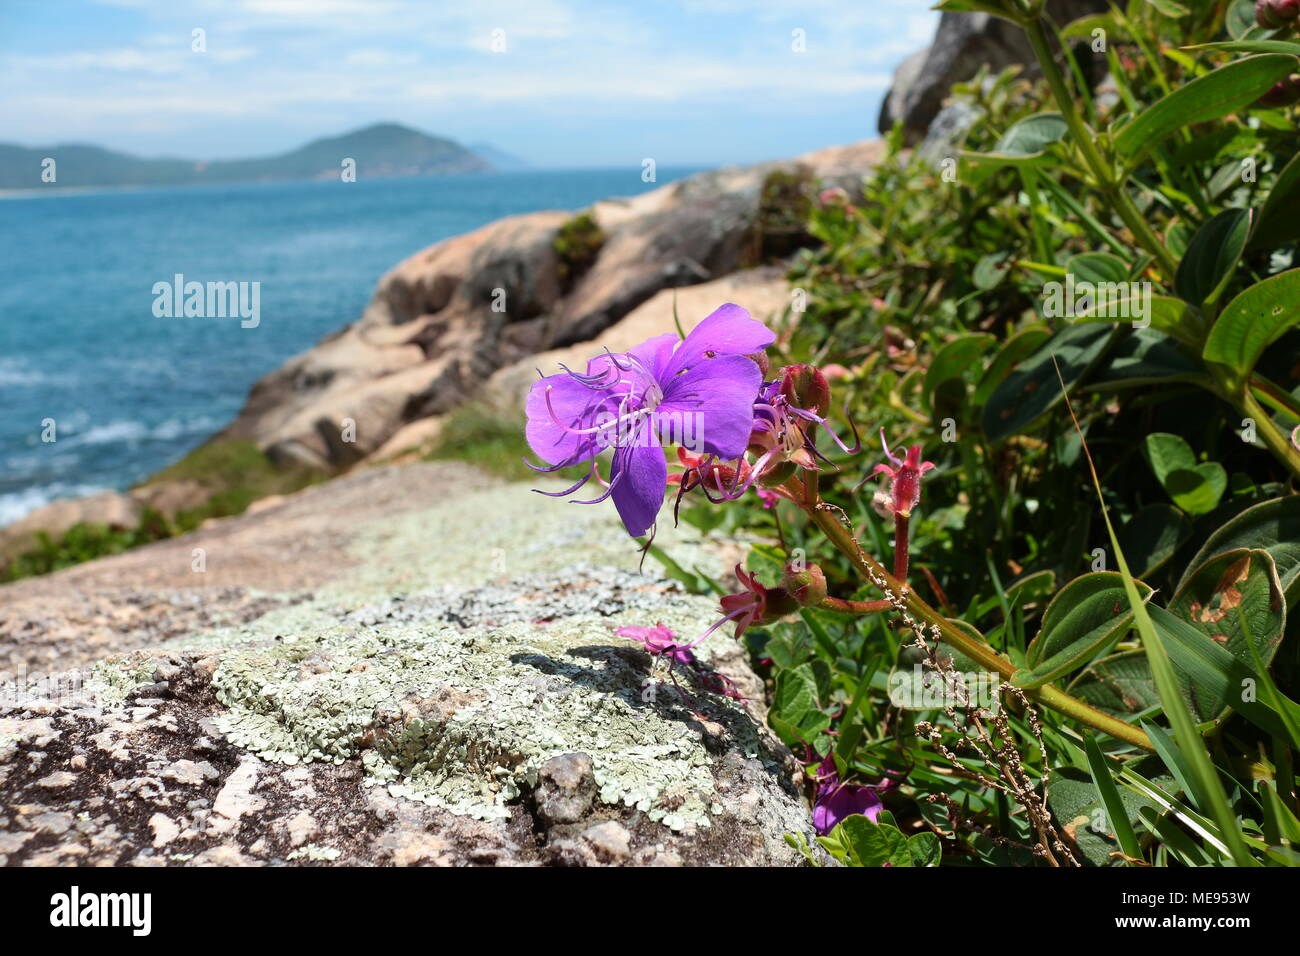 Purple Tibouchina granulosa by rocky cliff with the ocean in the background, Praia do Rosa, Brazil - Stock Image